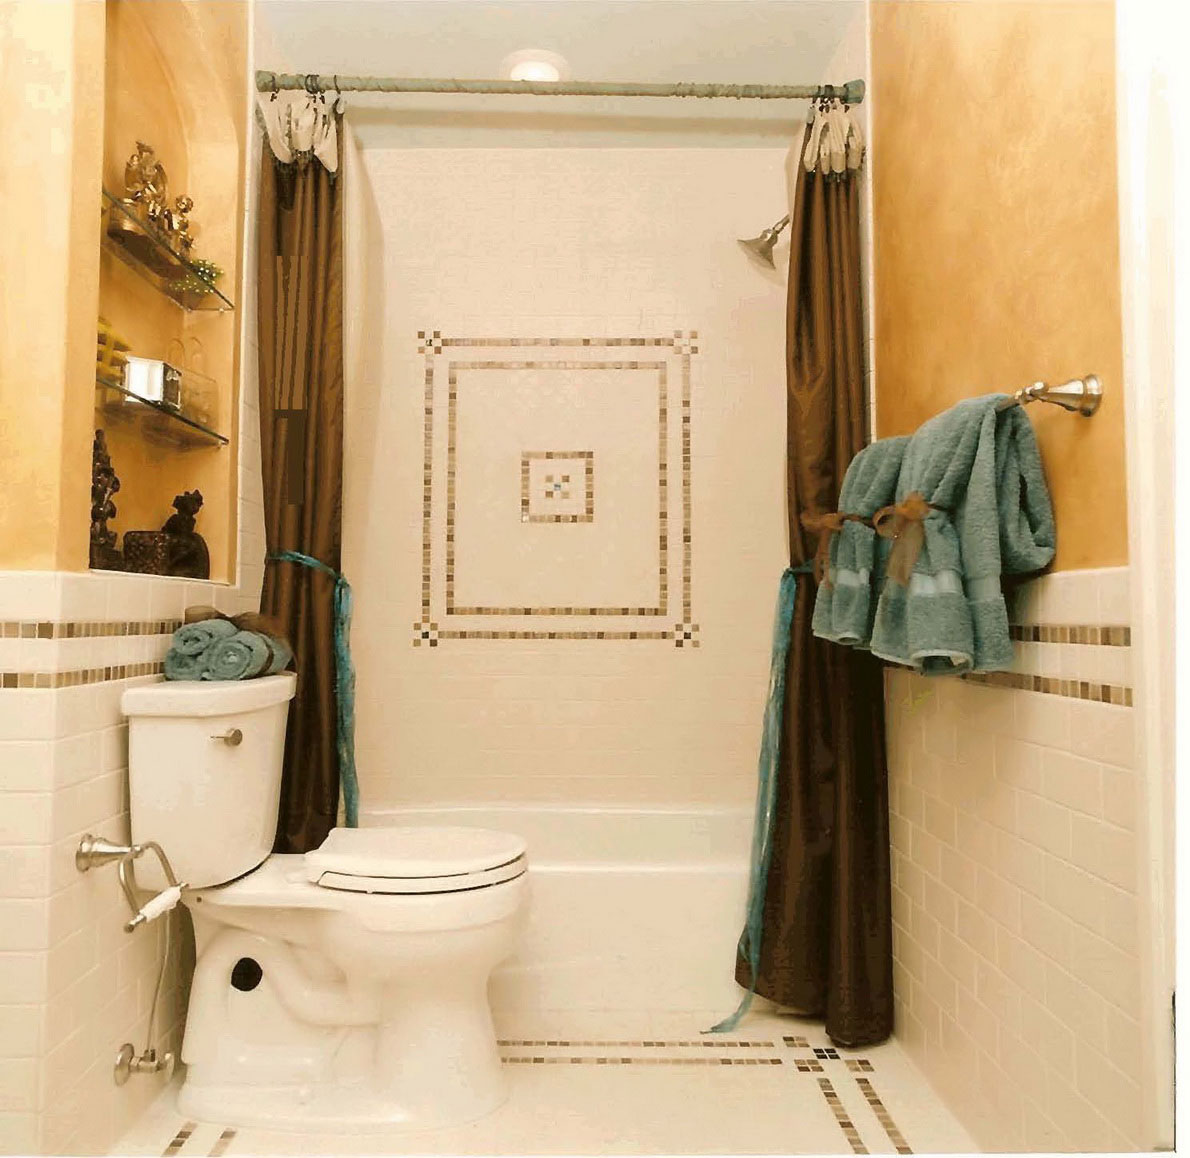 Bathroom Designs For Small Spaces (Image 4 of 20)